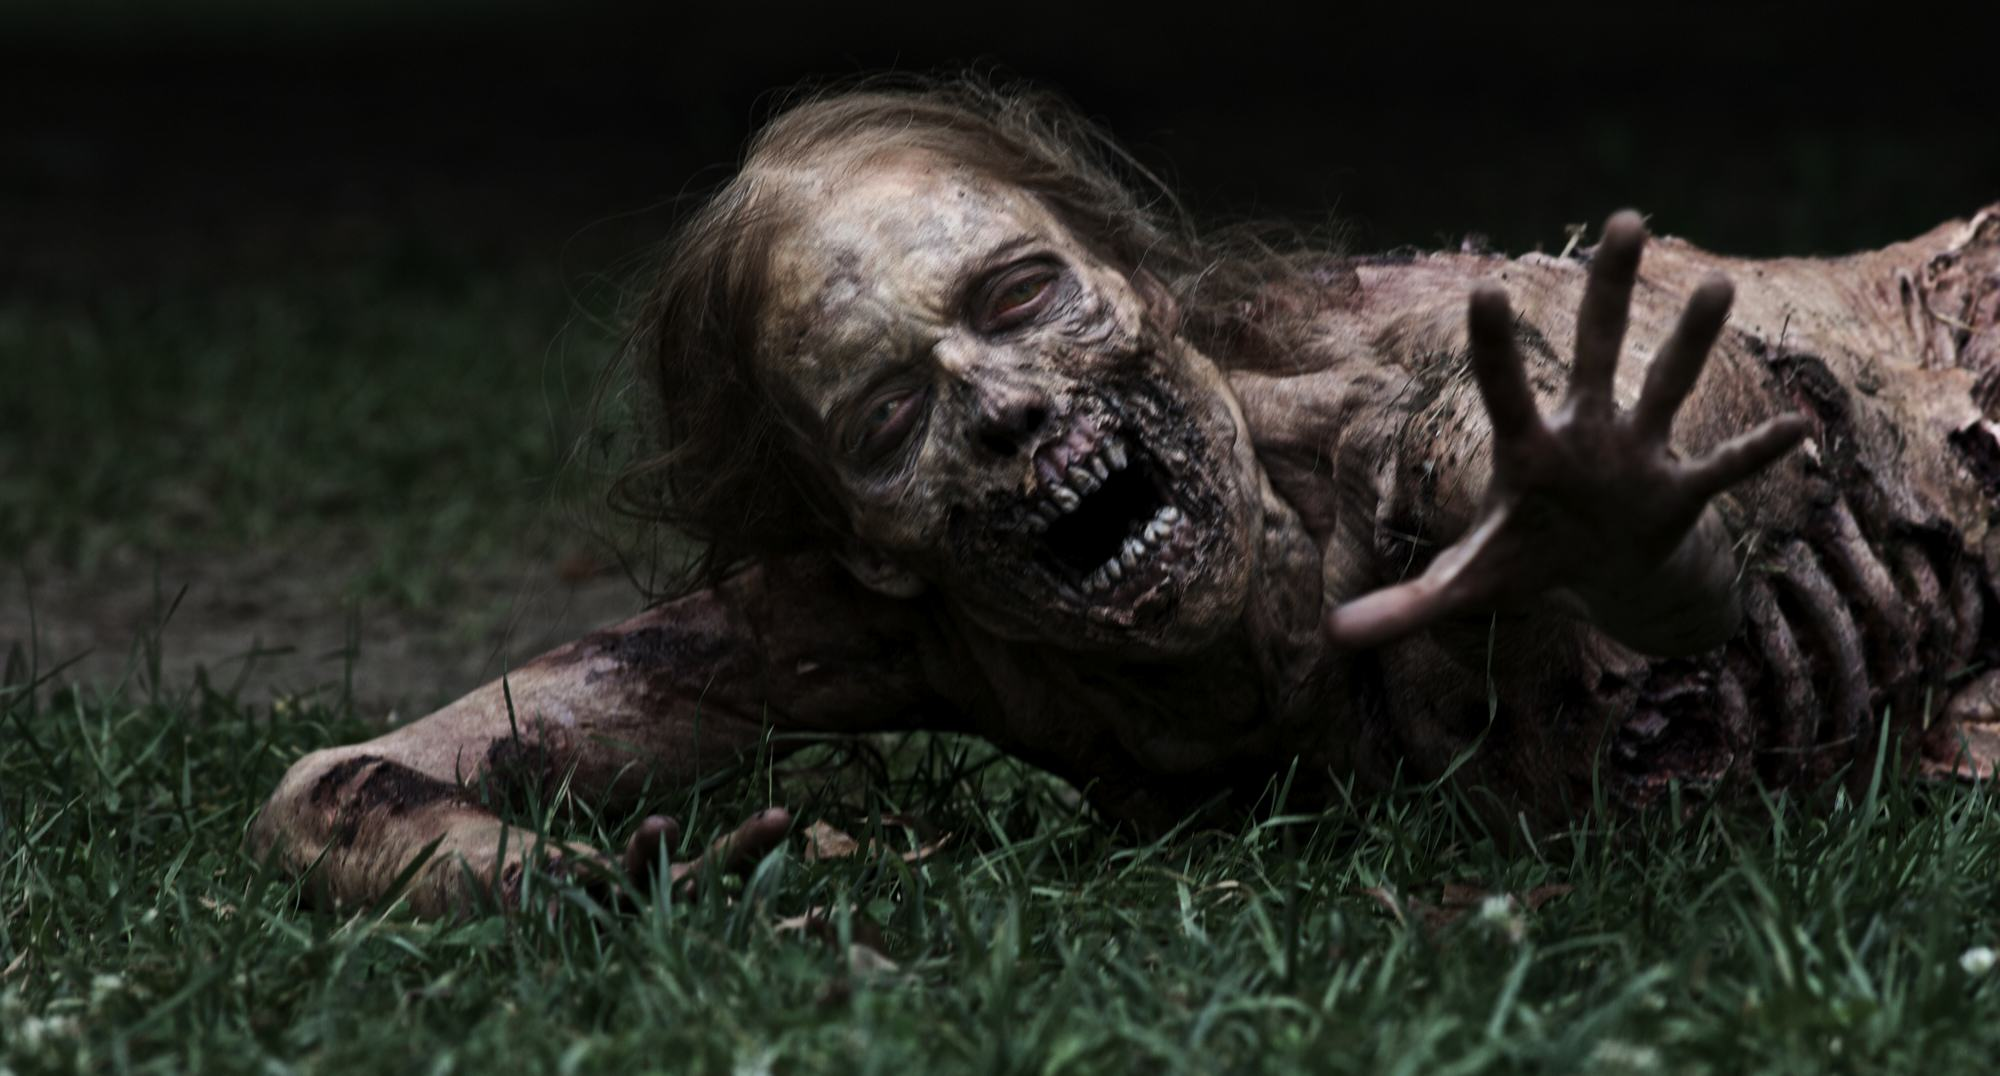 Theres A Real Disorder Where People Believe They Are Rotting Corpses dead corpse1